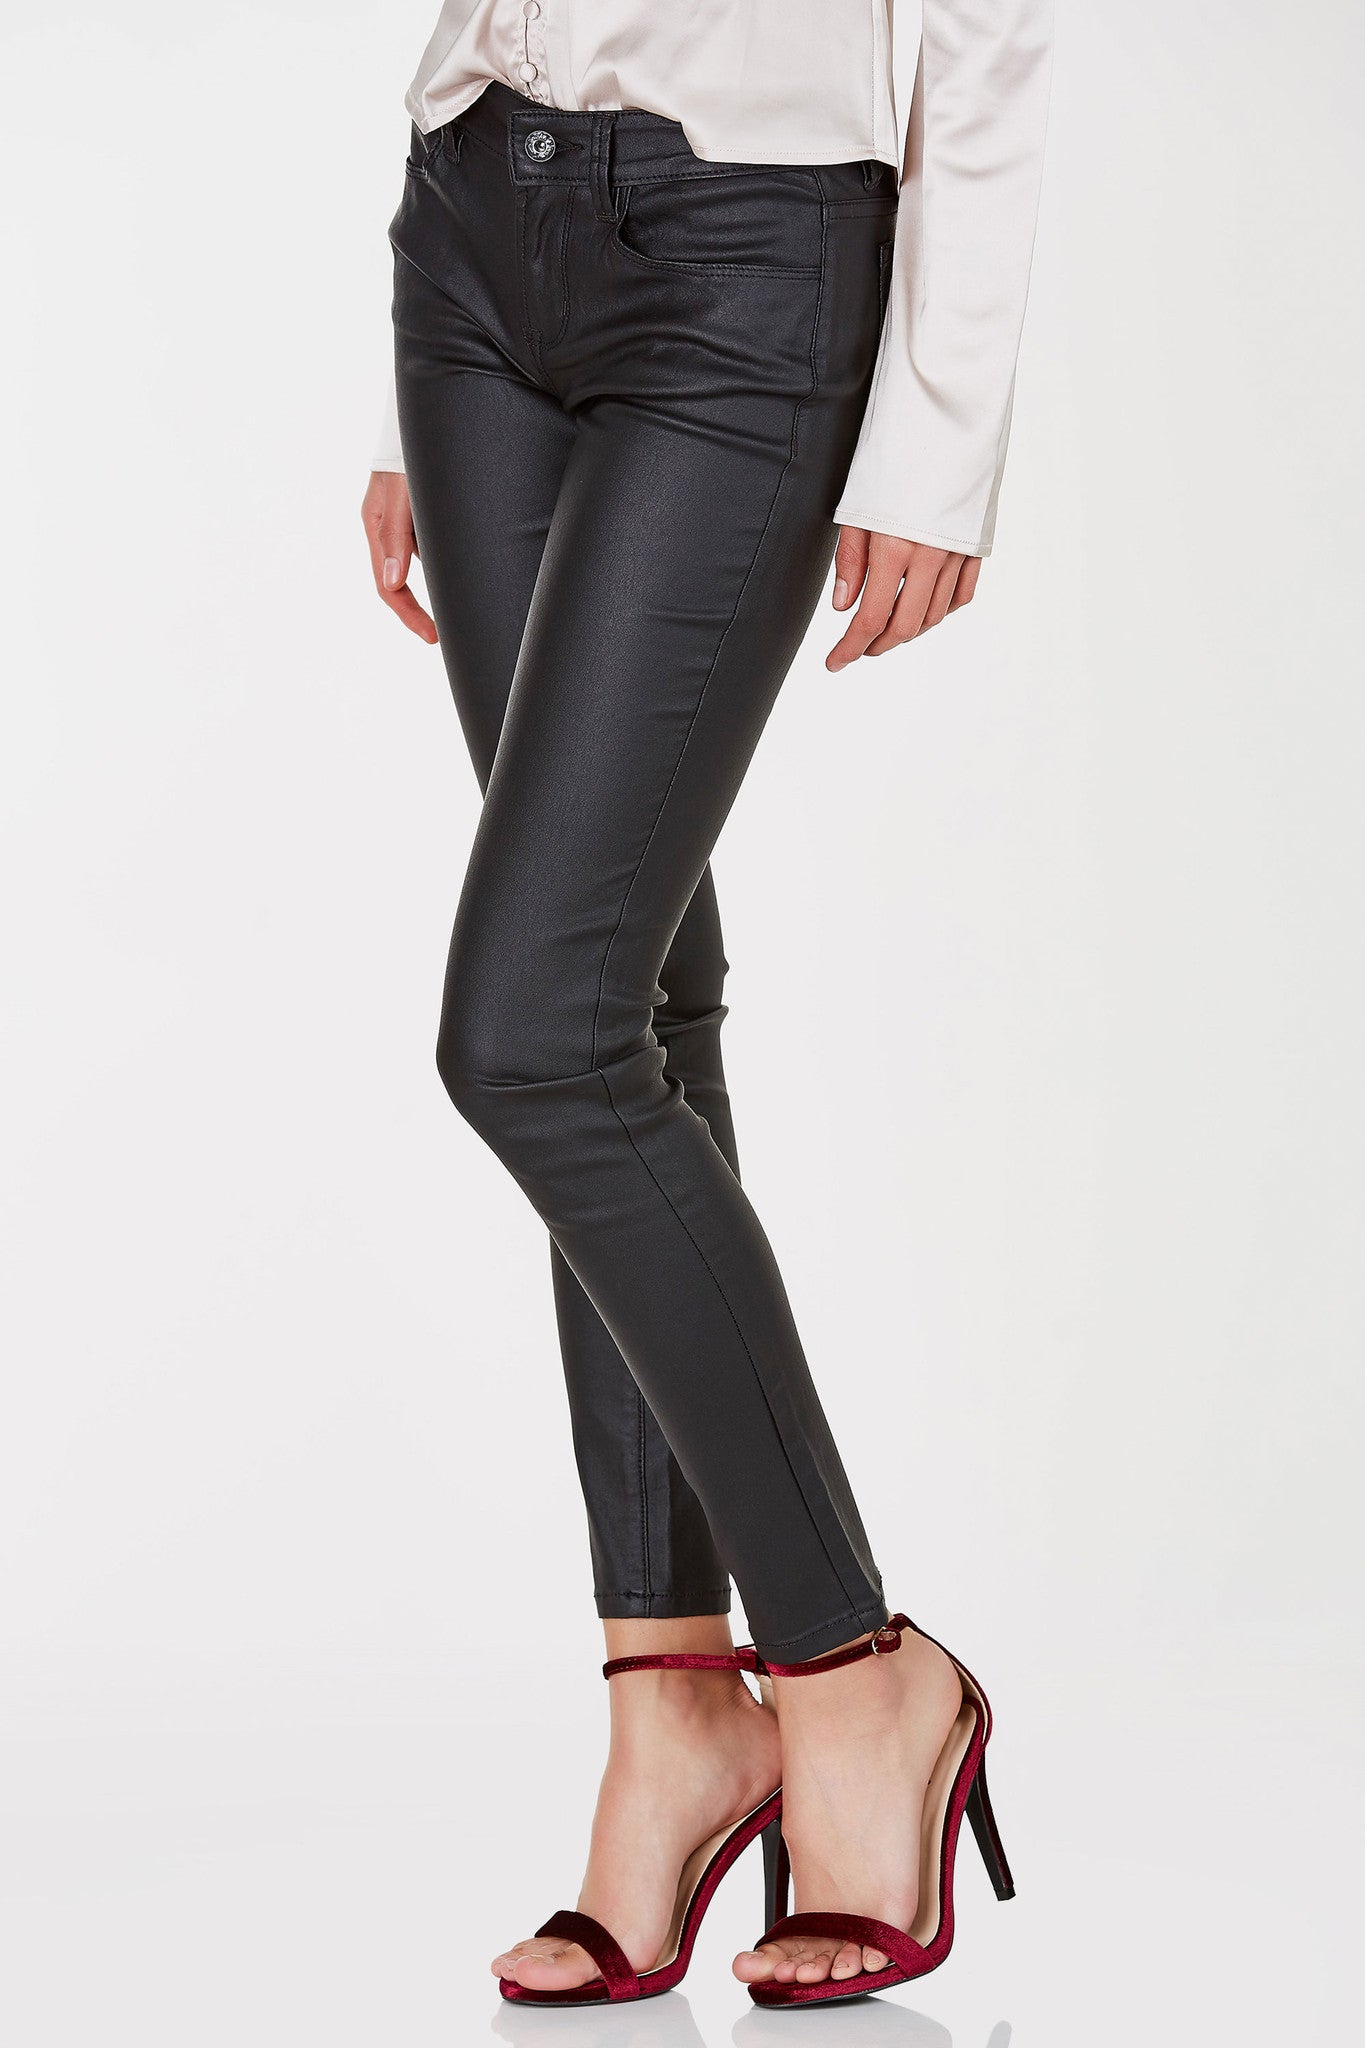 A dope pair of coated pants that is sure to give you a sleek modern look. These badboys have five fuctional pockets and a single button for closure and fit. Throw on a solid top and heeled booties to complete the look!